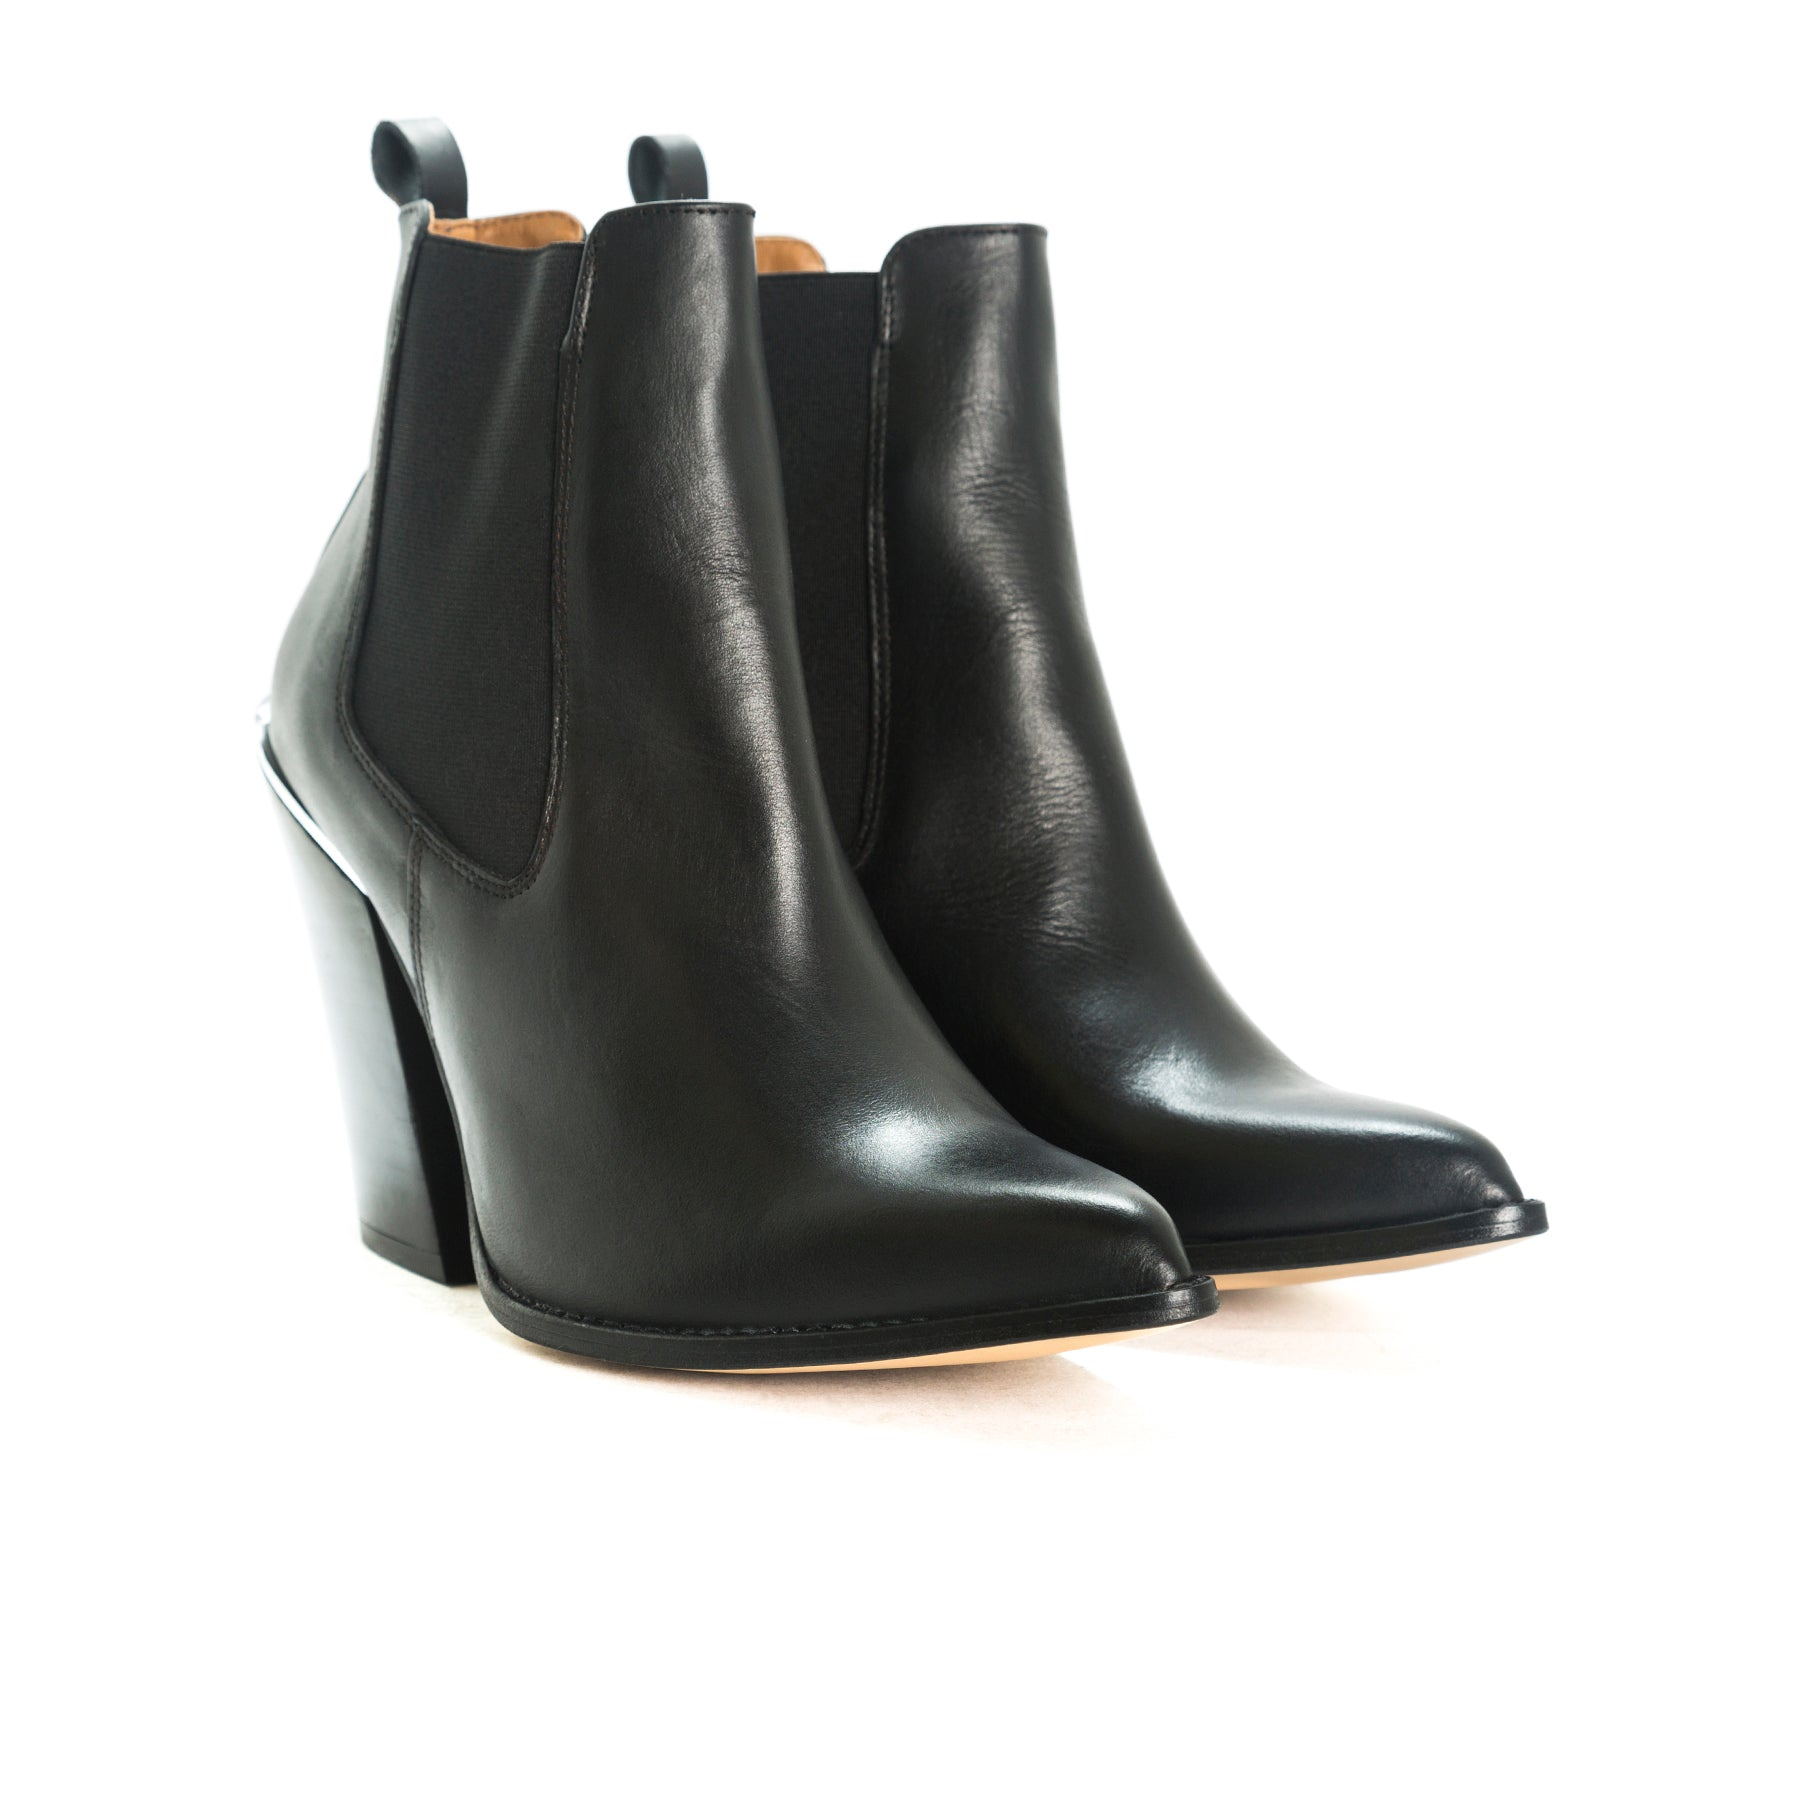 Nartoro Black Leather Boots